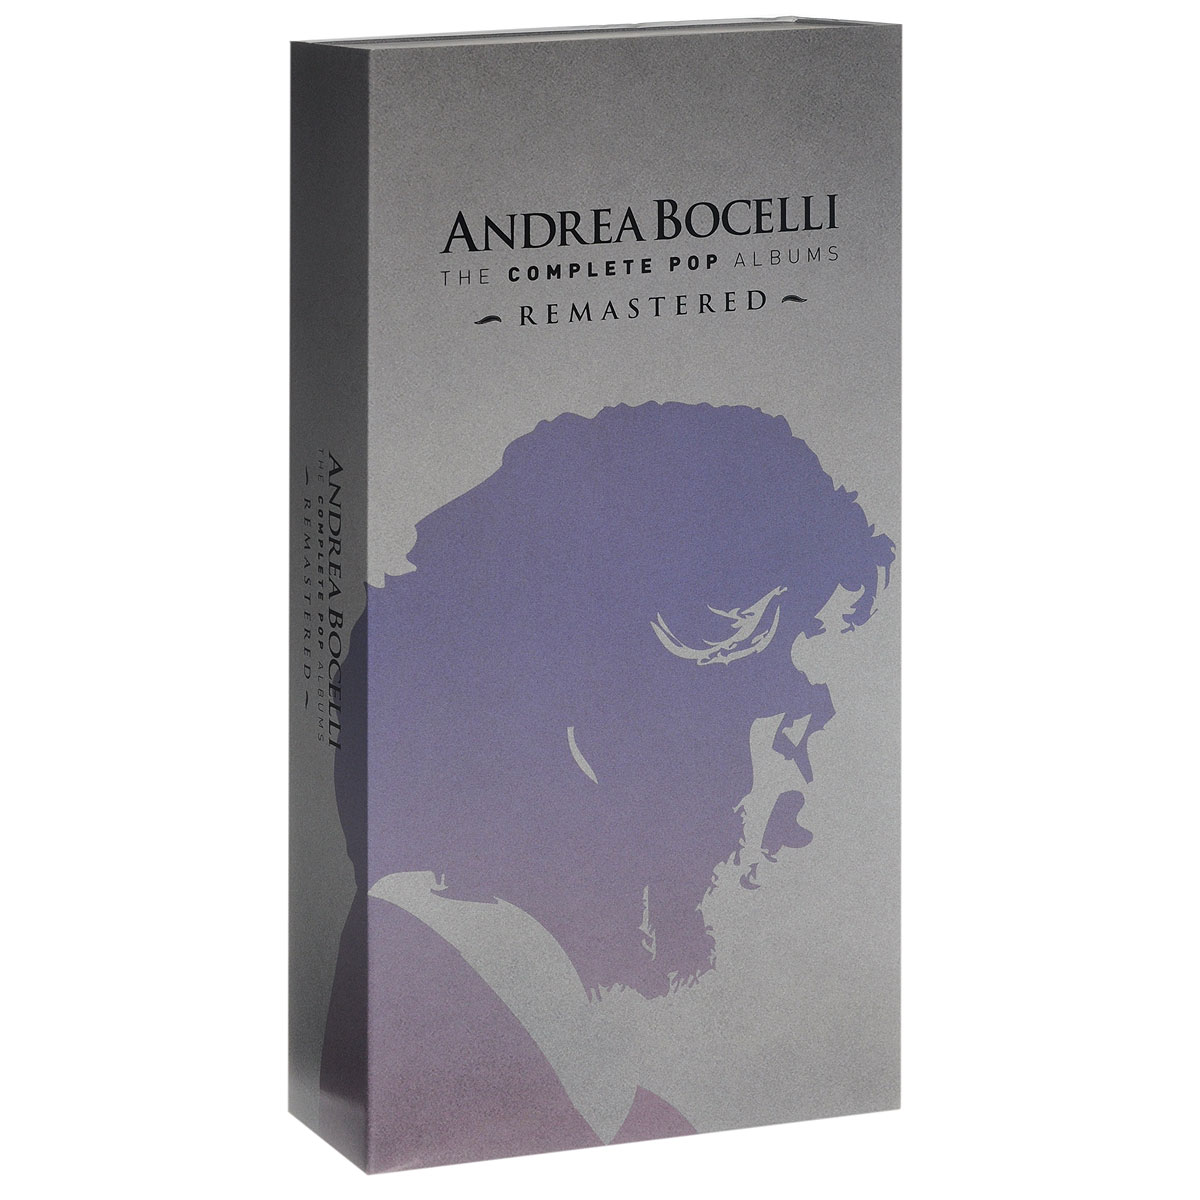 Андреа Бочелли Andrea Bocelli. The Complete Pop Albums (16 CD) kamiya t the handbook of japanese adjectives and adverbs